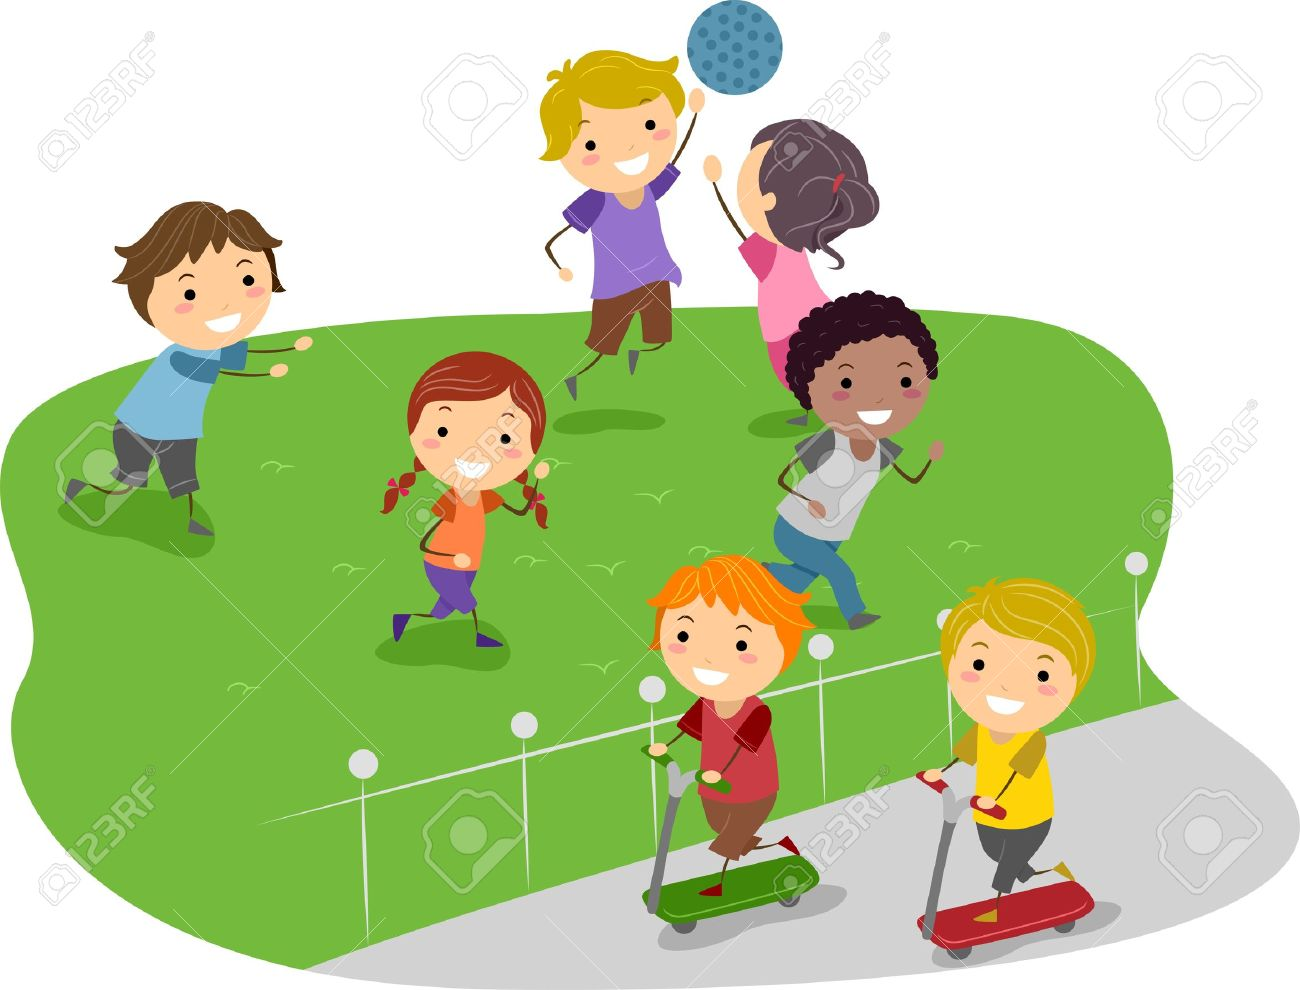 illustration of kids playing in a park stock photo, picture and